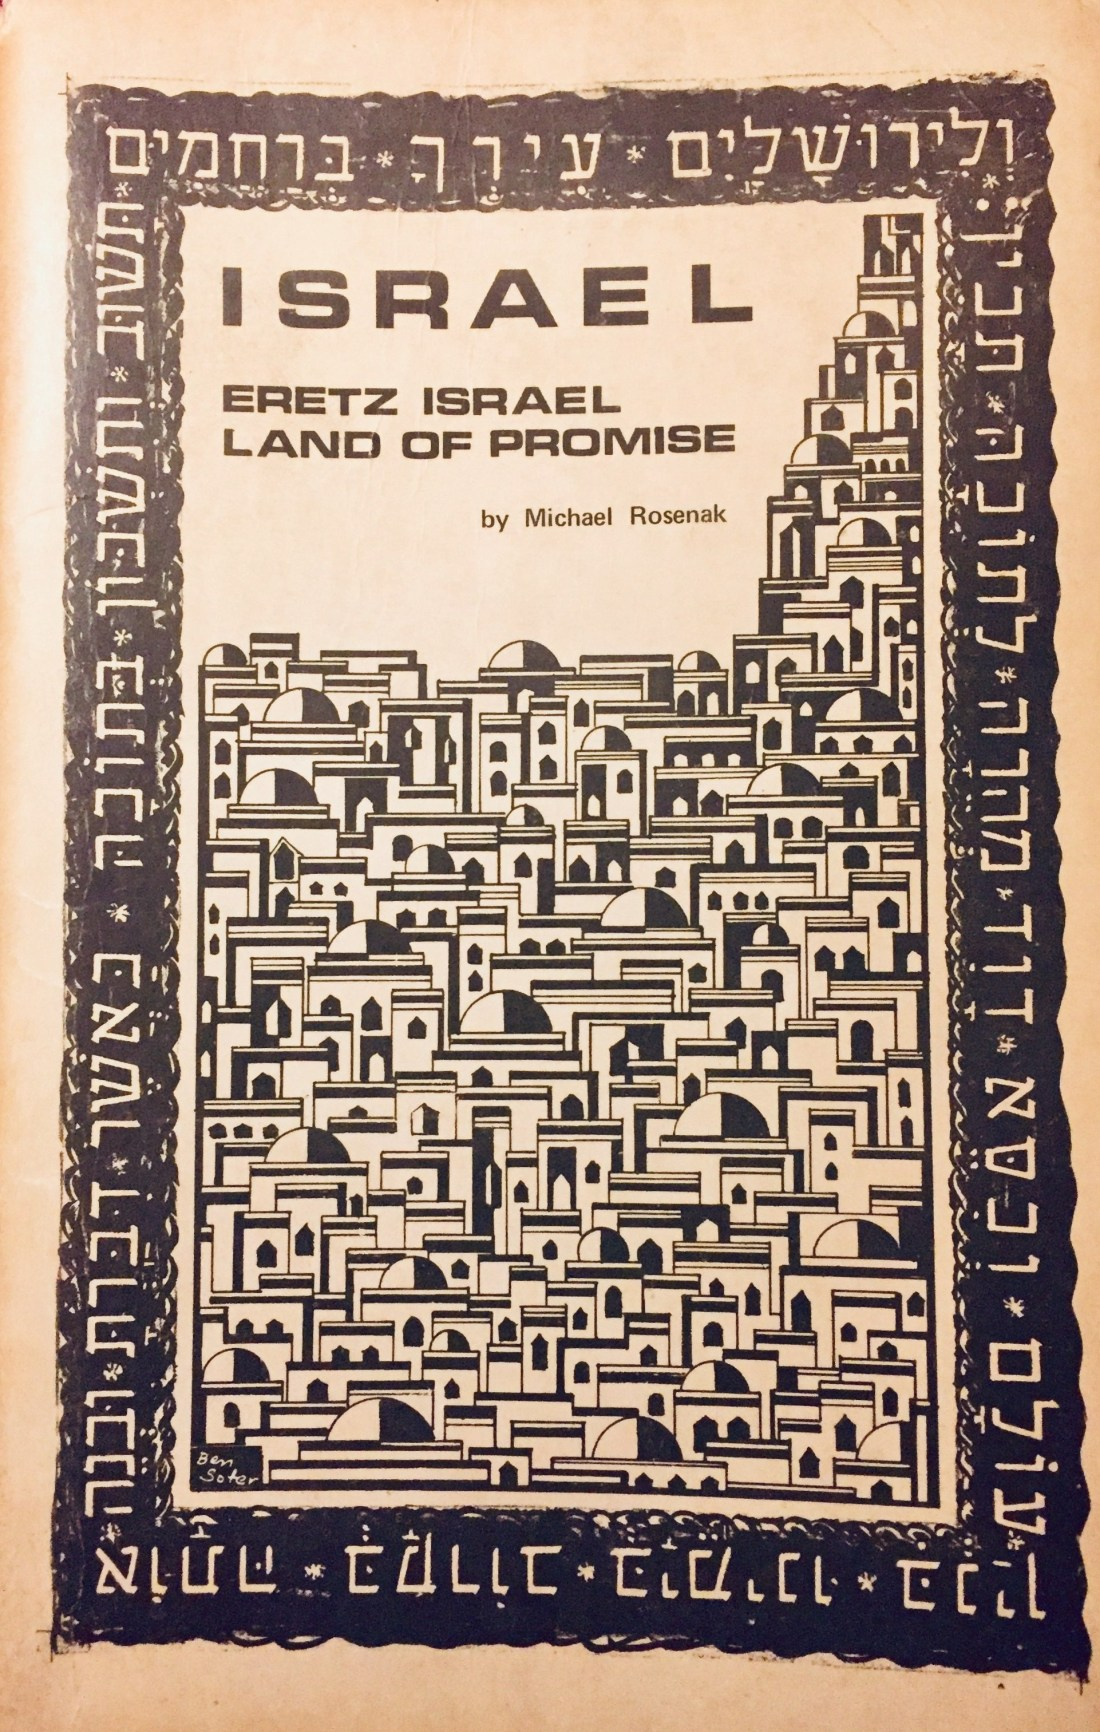 The cover of Israel: Eretz Israel, Land of Promise